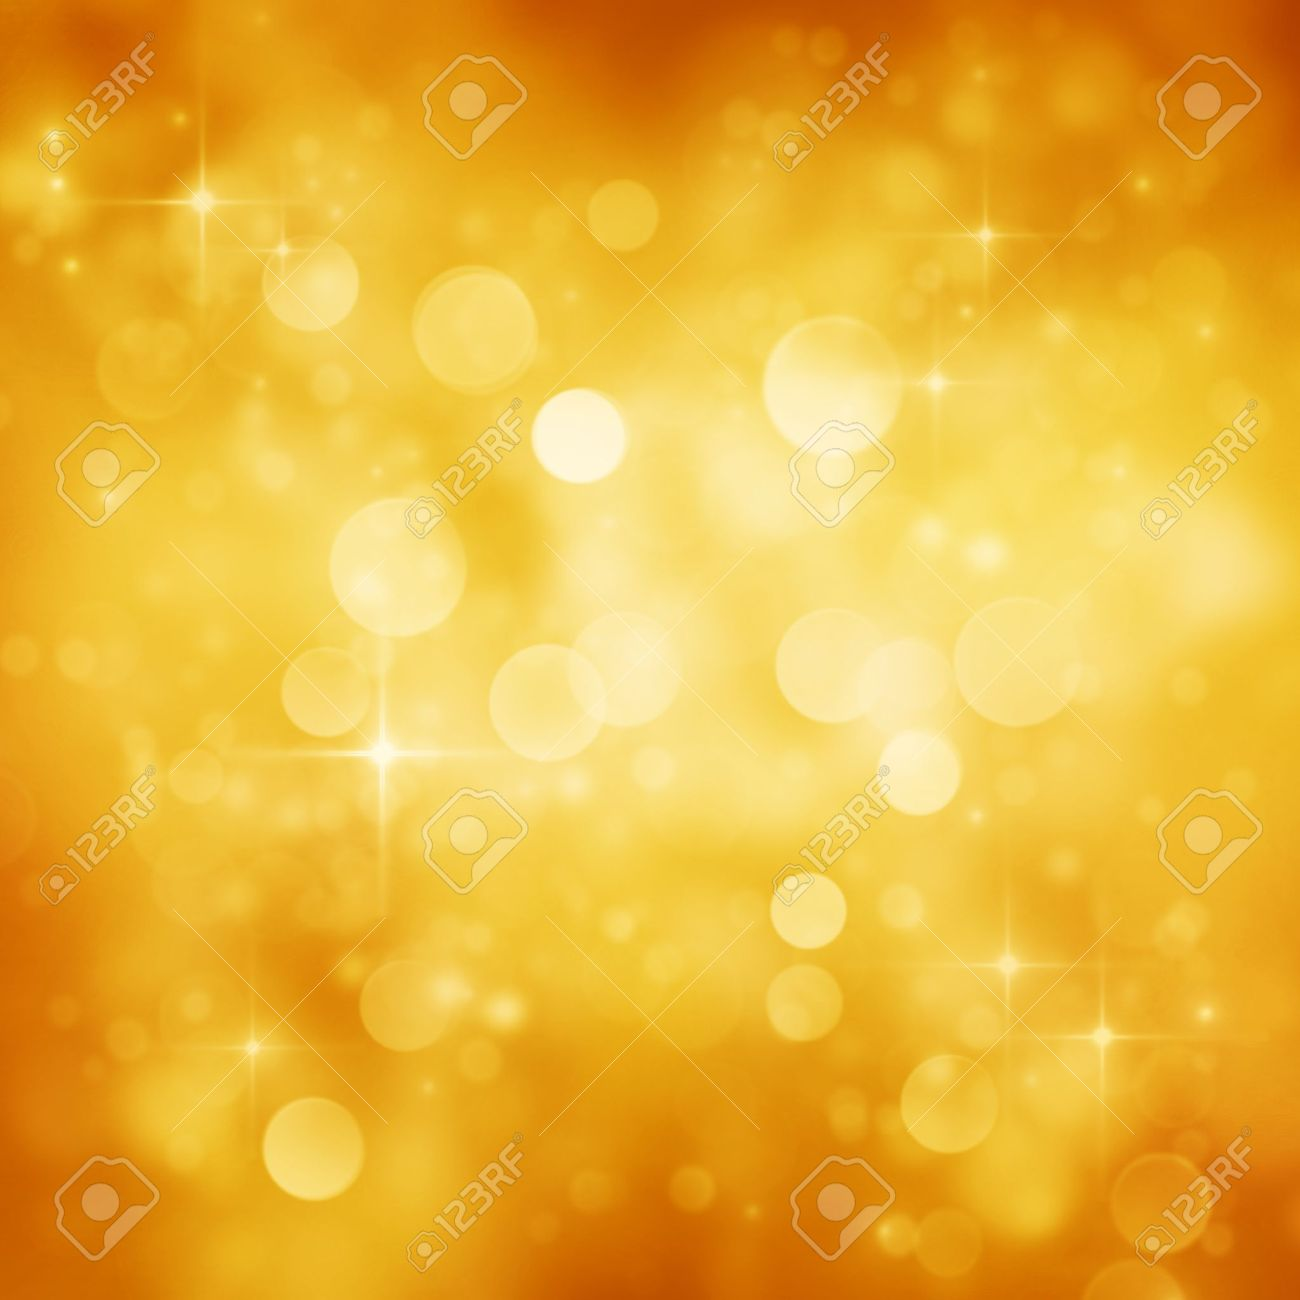 Gold Festive Christmas background  Elegant abstract background with bokeh defocused lights and stars Stock Photo - 16278612